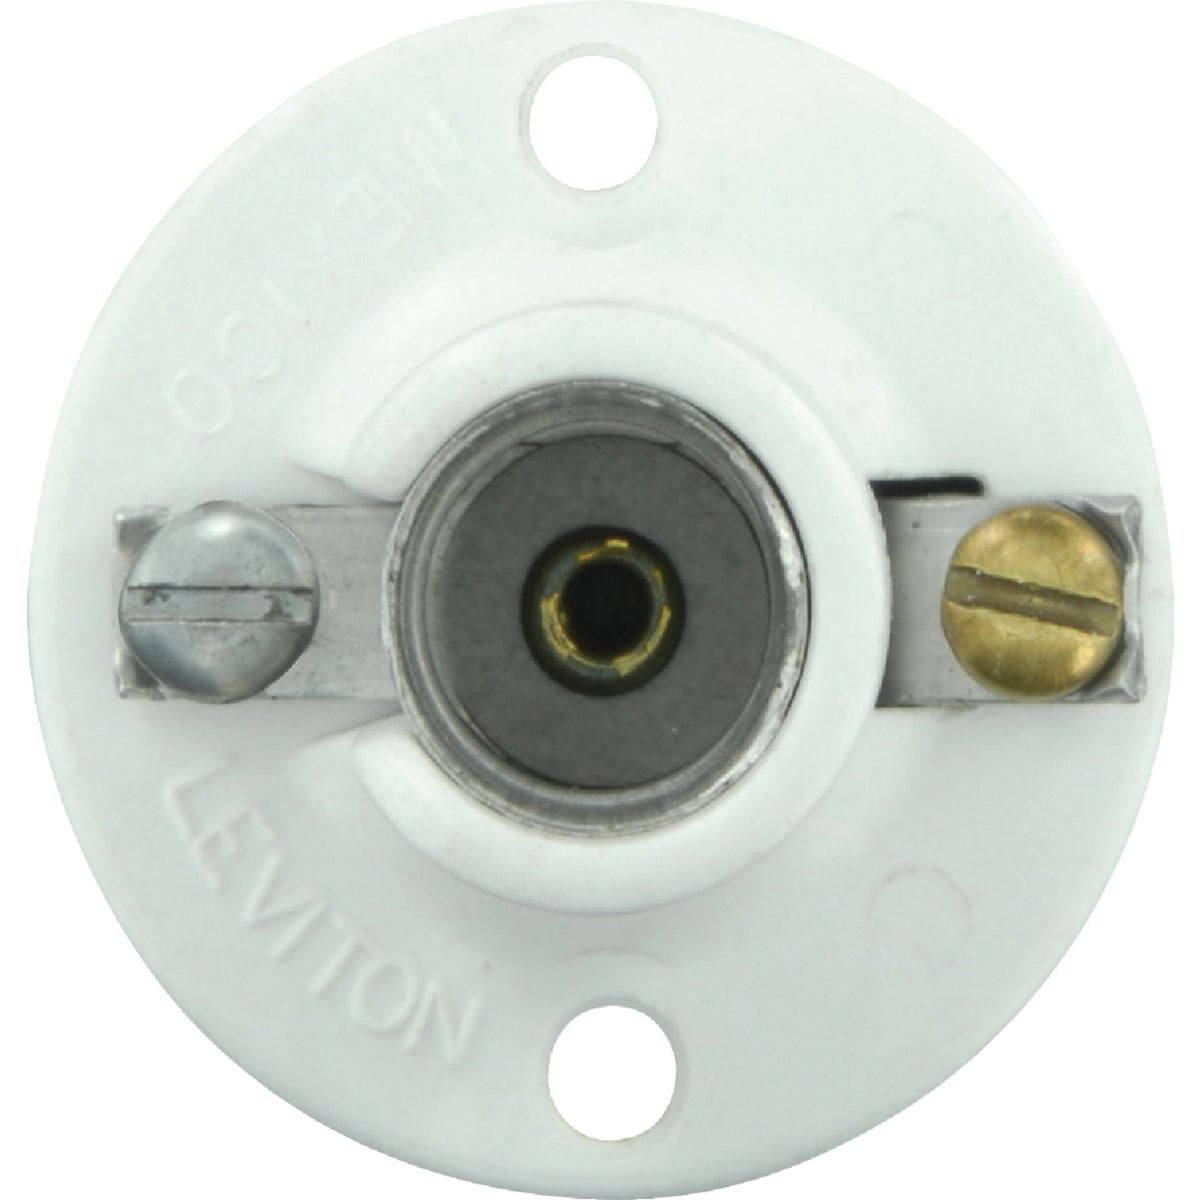 CANDLE LAMPHOLDER - 10028 by Leviton Mfg Co